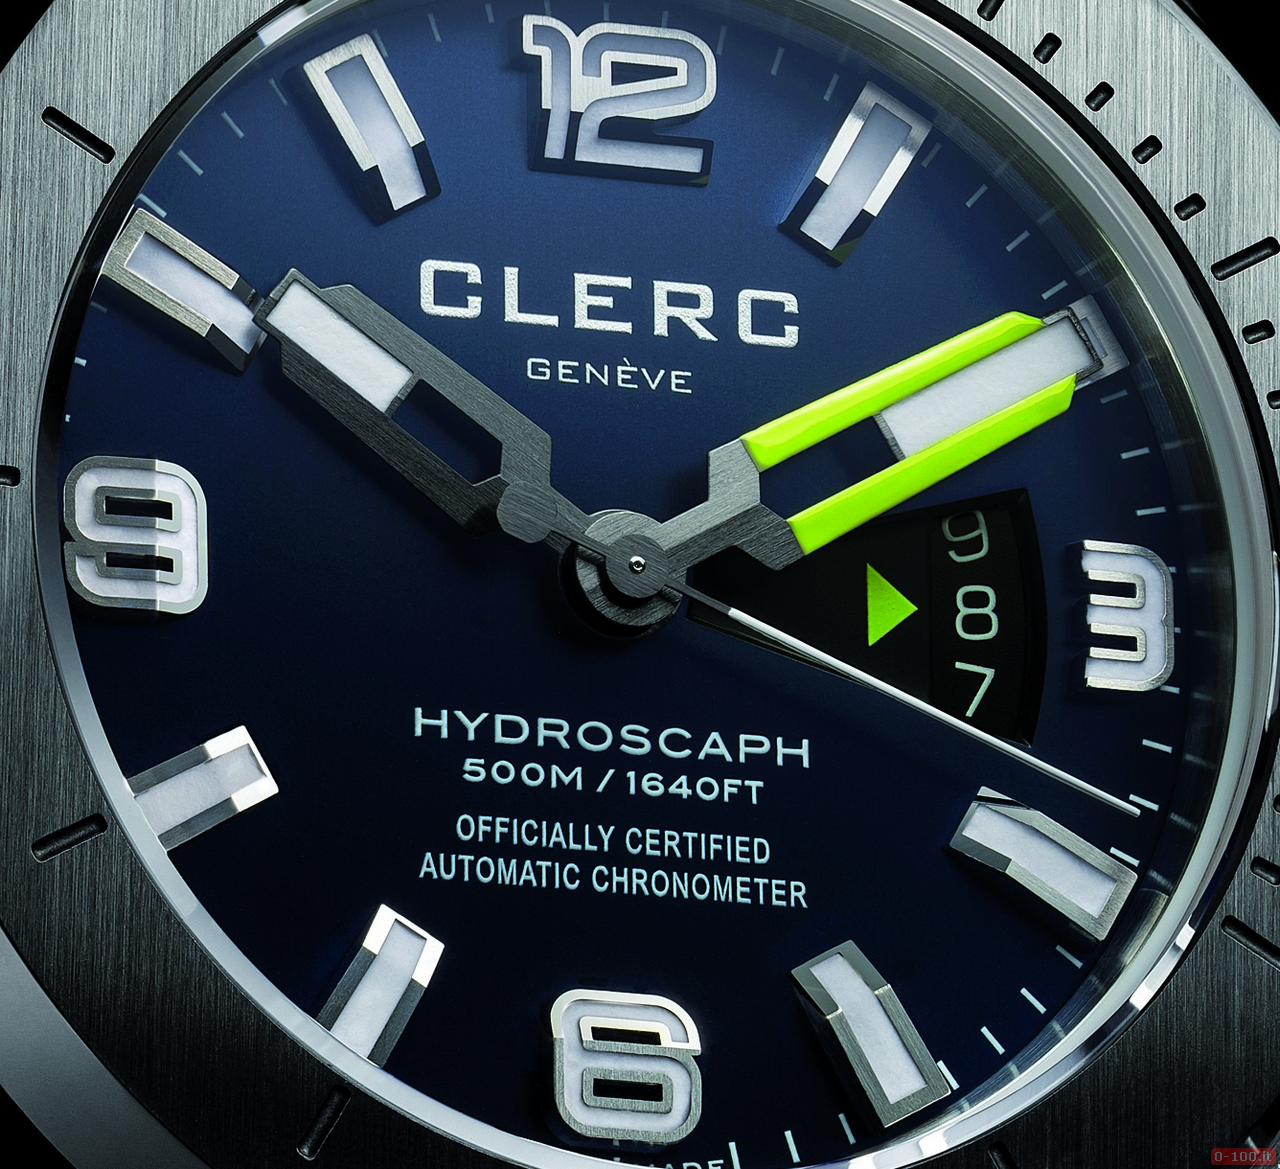 anteprima-baselword-2013-clerc-hydroscaph-h1-chronometer_0-100_3